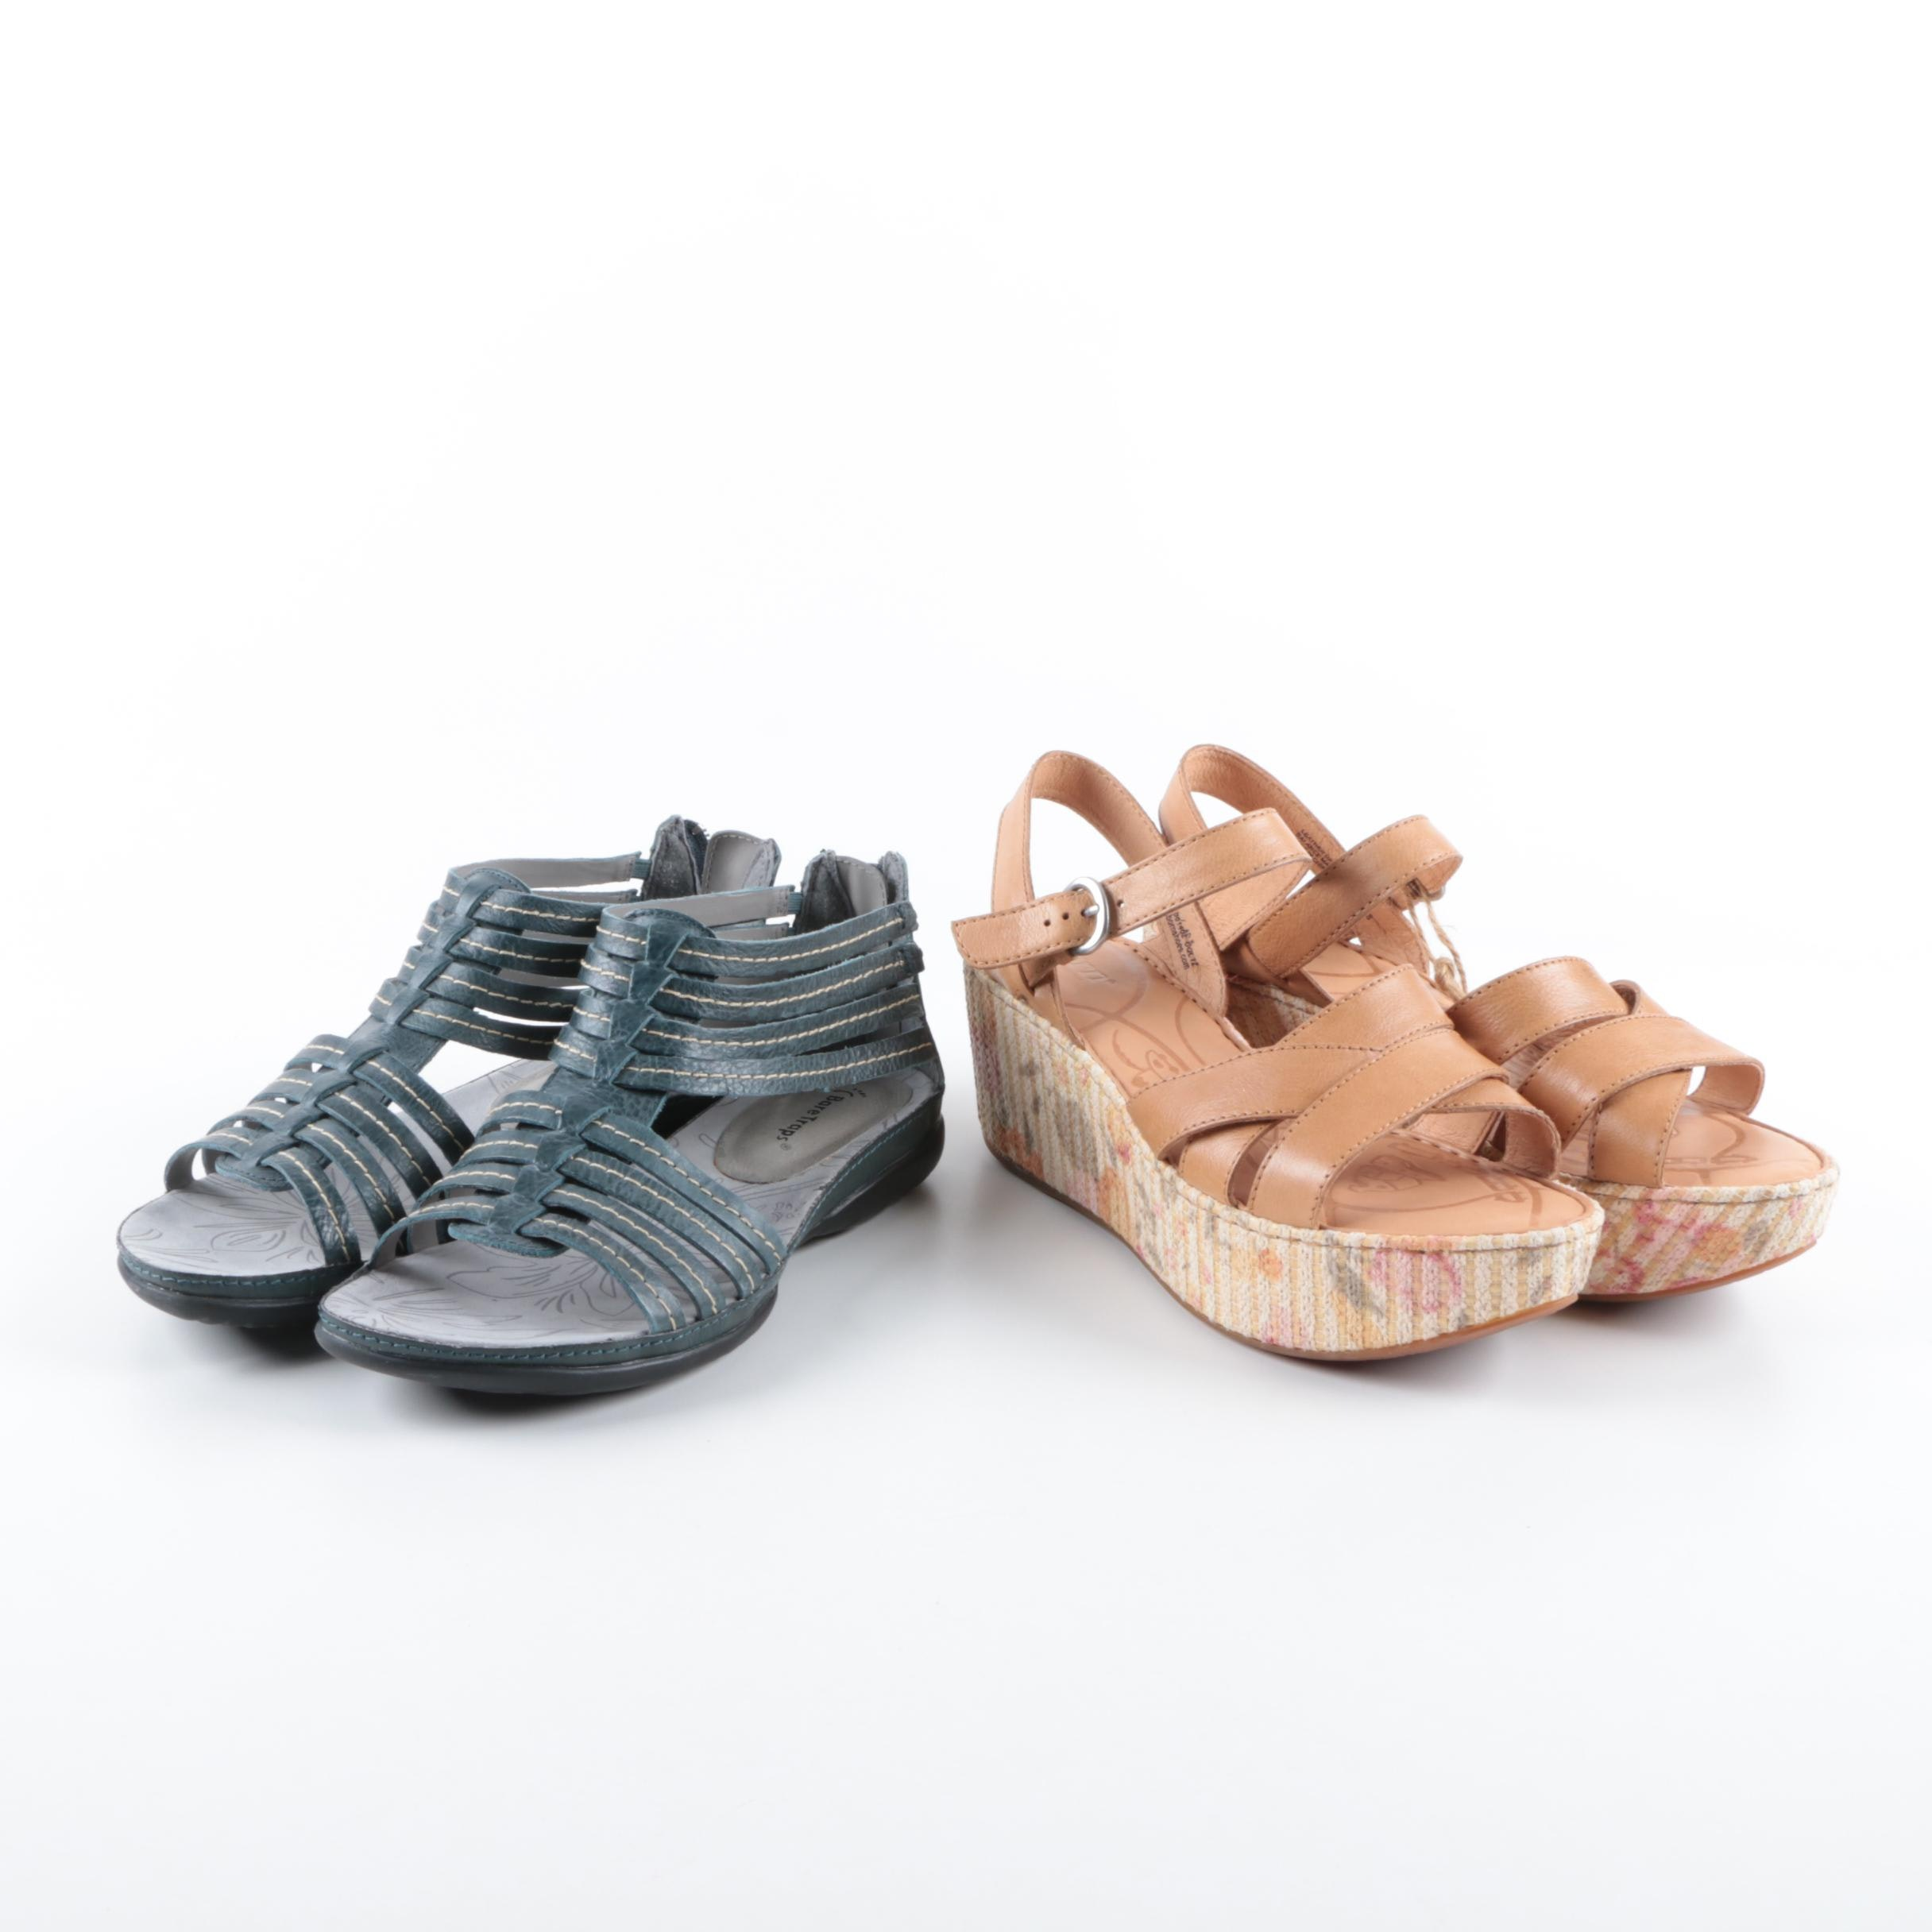 Women's Wedge Sandals Including Born